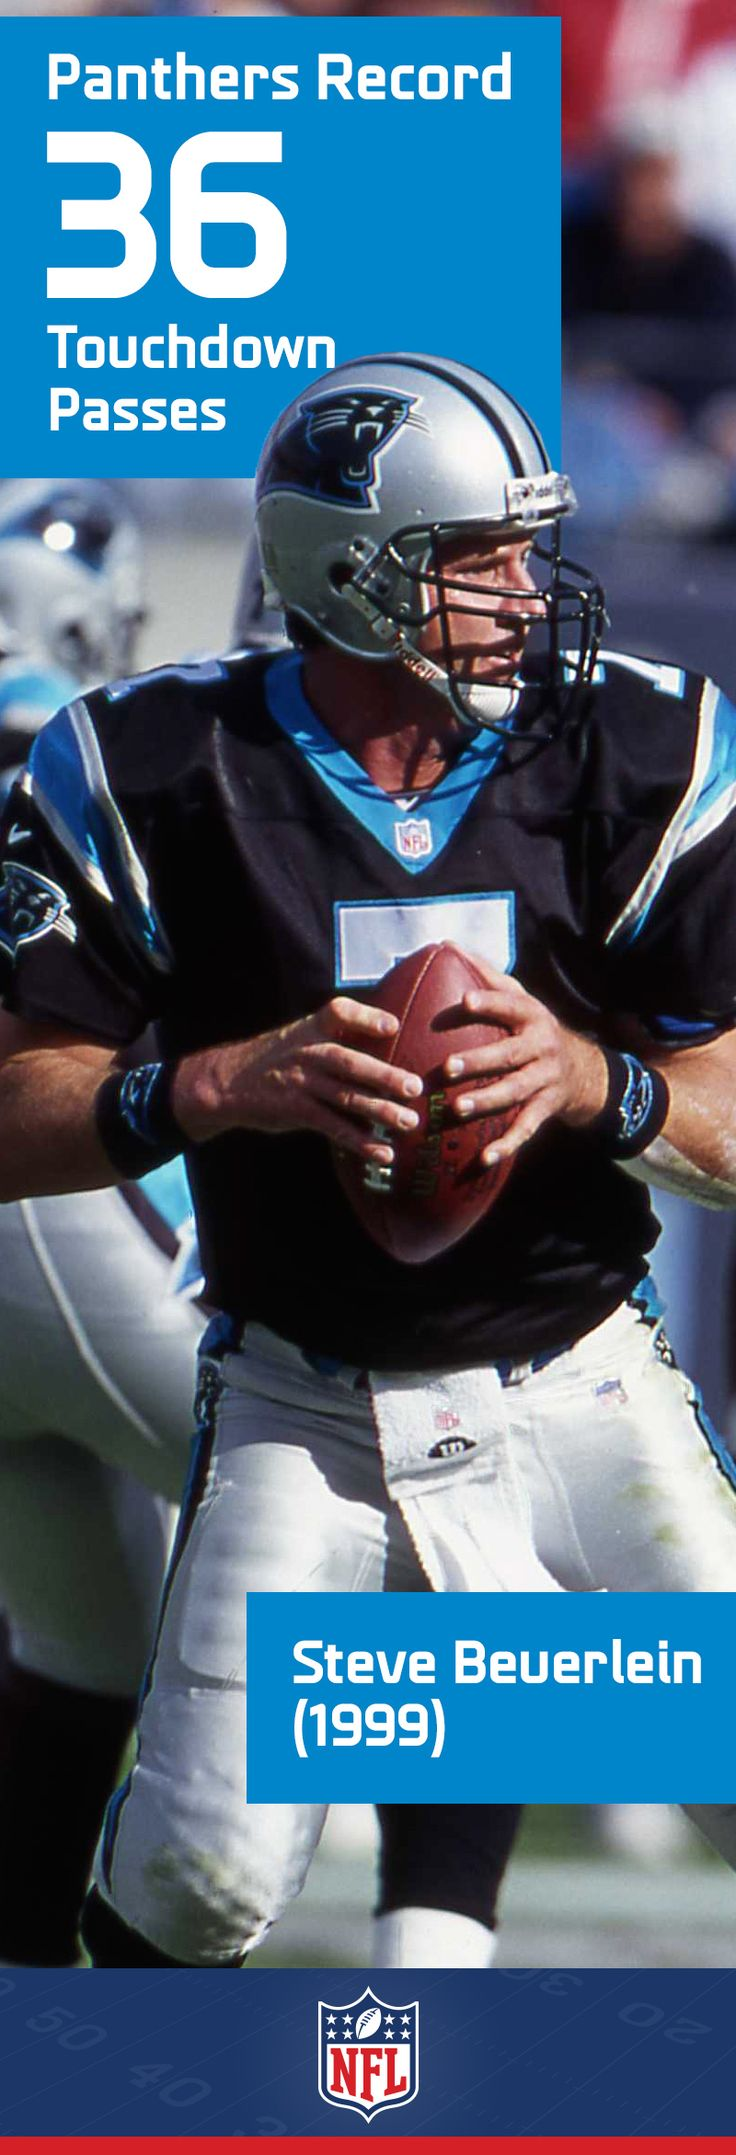 In Steve Beuerlein's record-setting 1999 season, he not only broke the Carolina Panthers record with 36 touchdown passes, he also led the NFL with 4,436 passing yards and 343 completions.